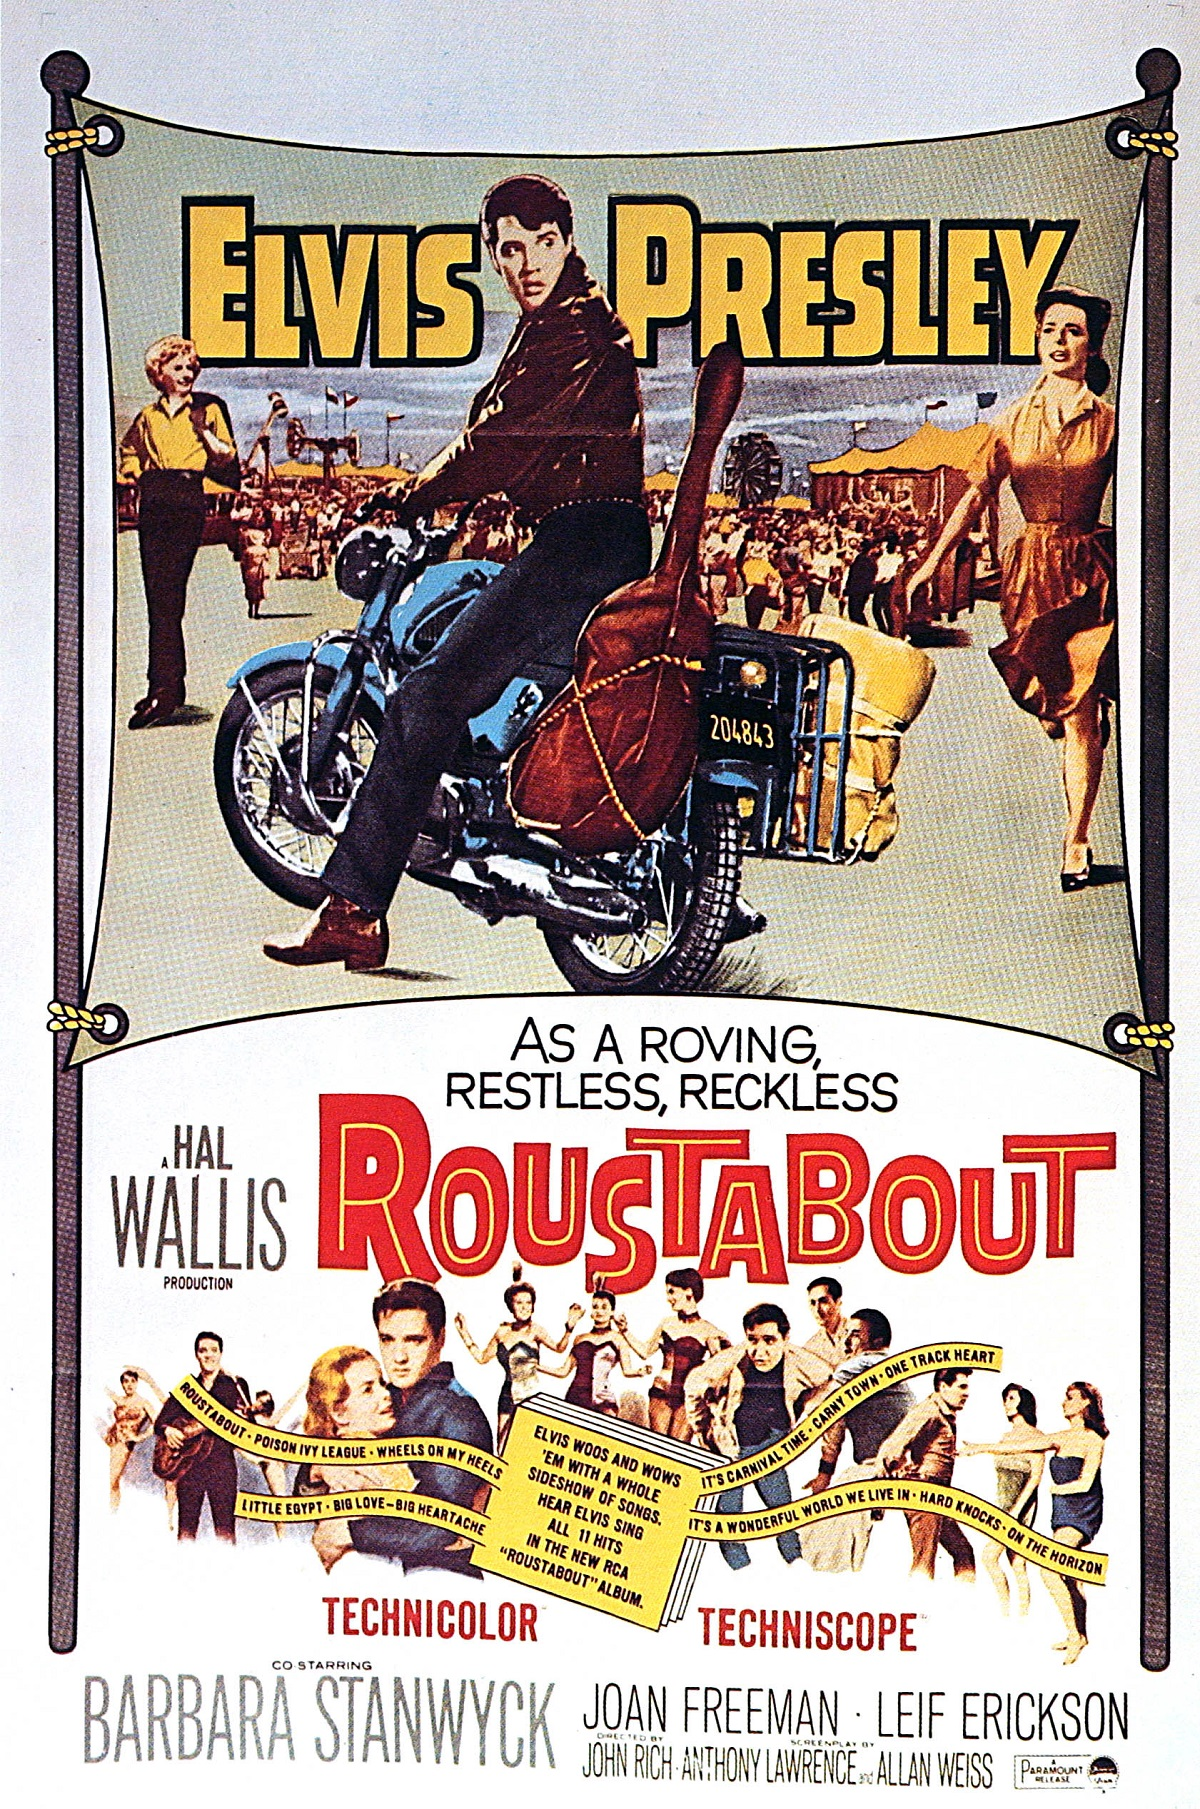 Film poster for 'Roustabout' with Elvis Presley